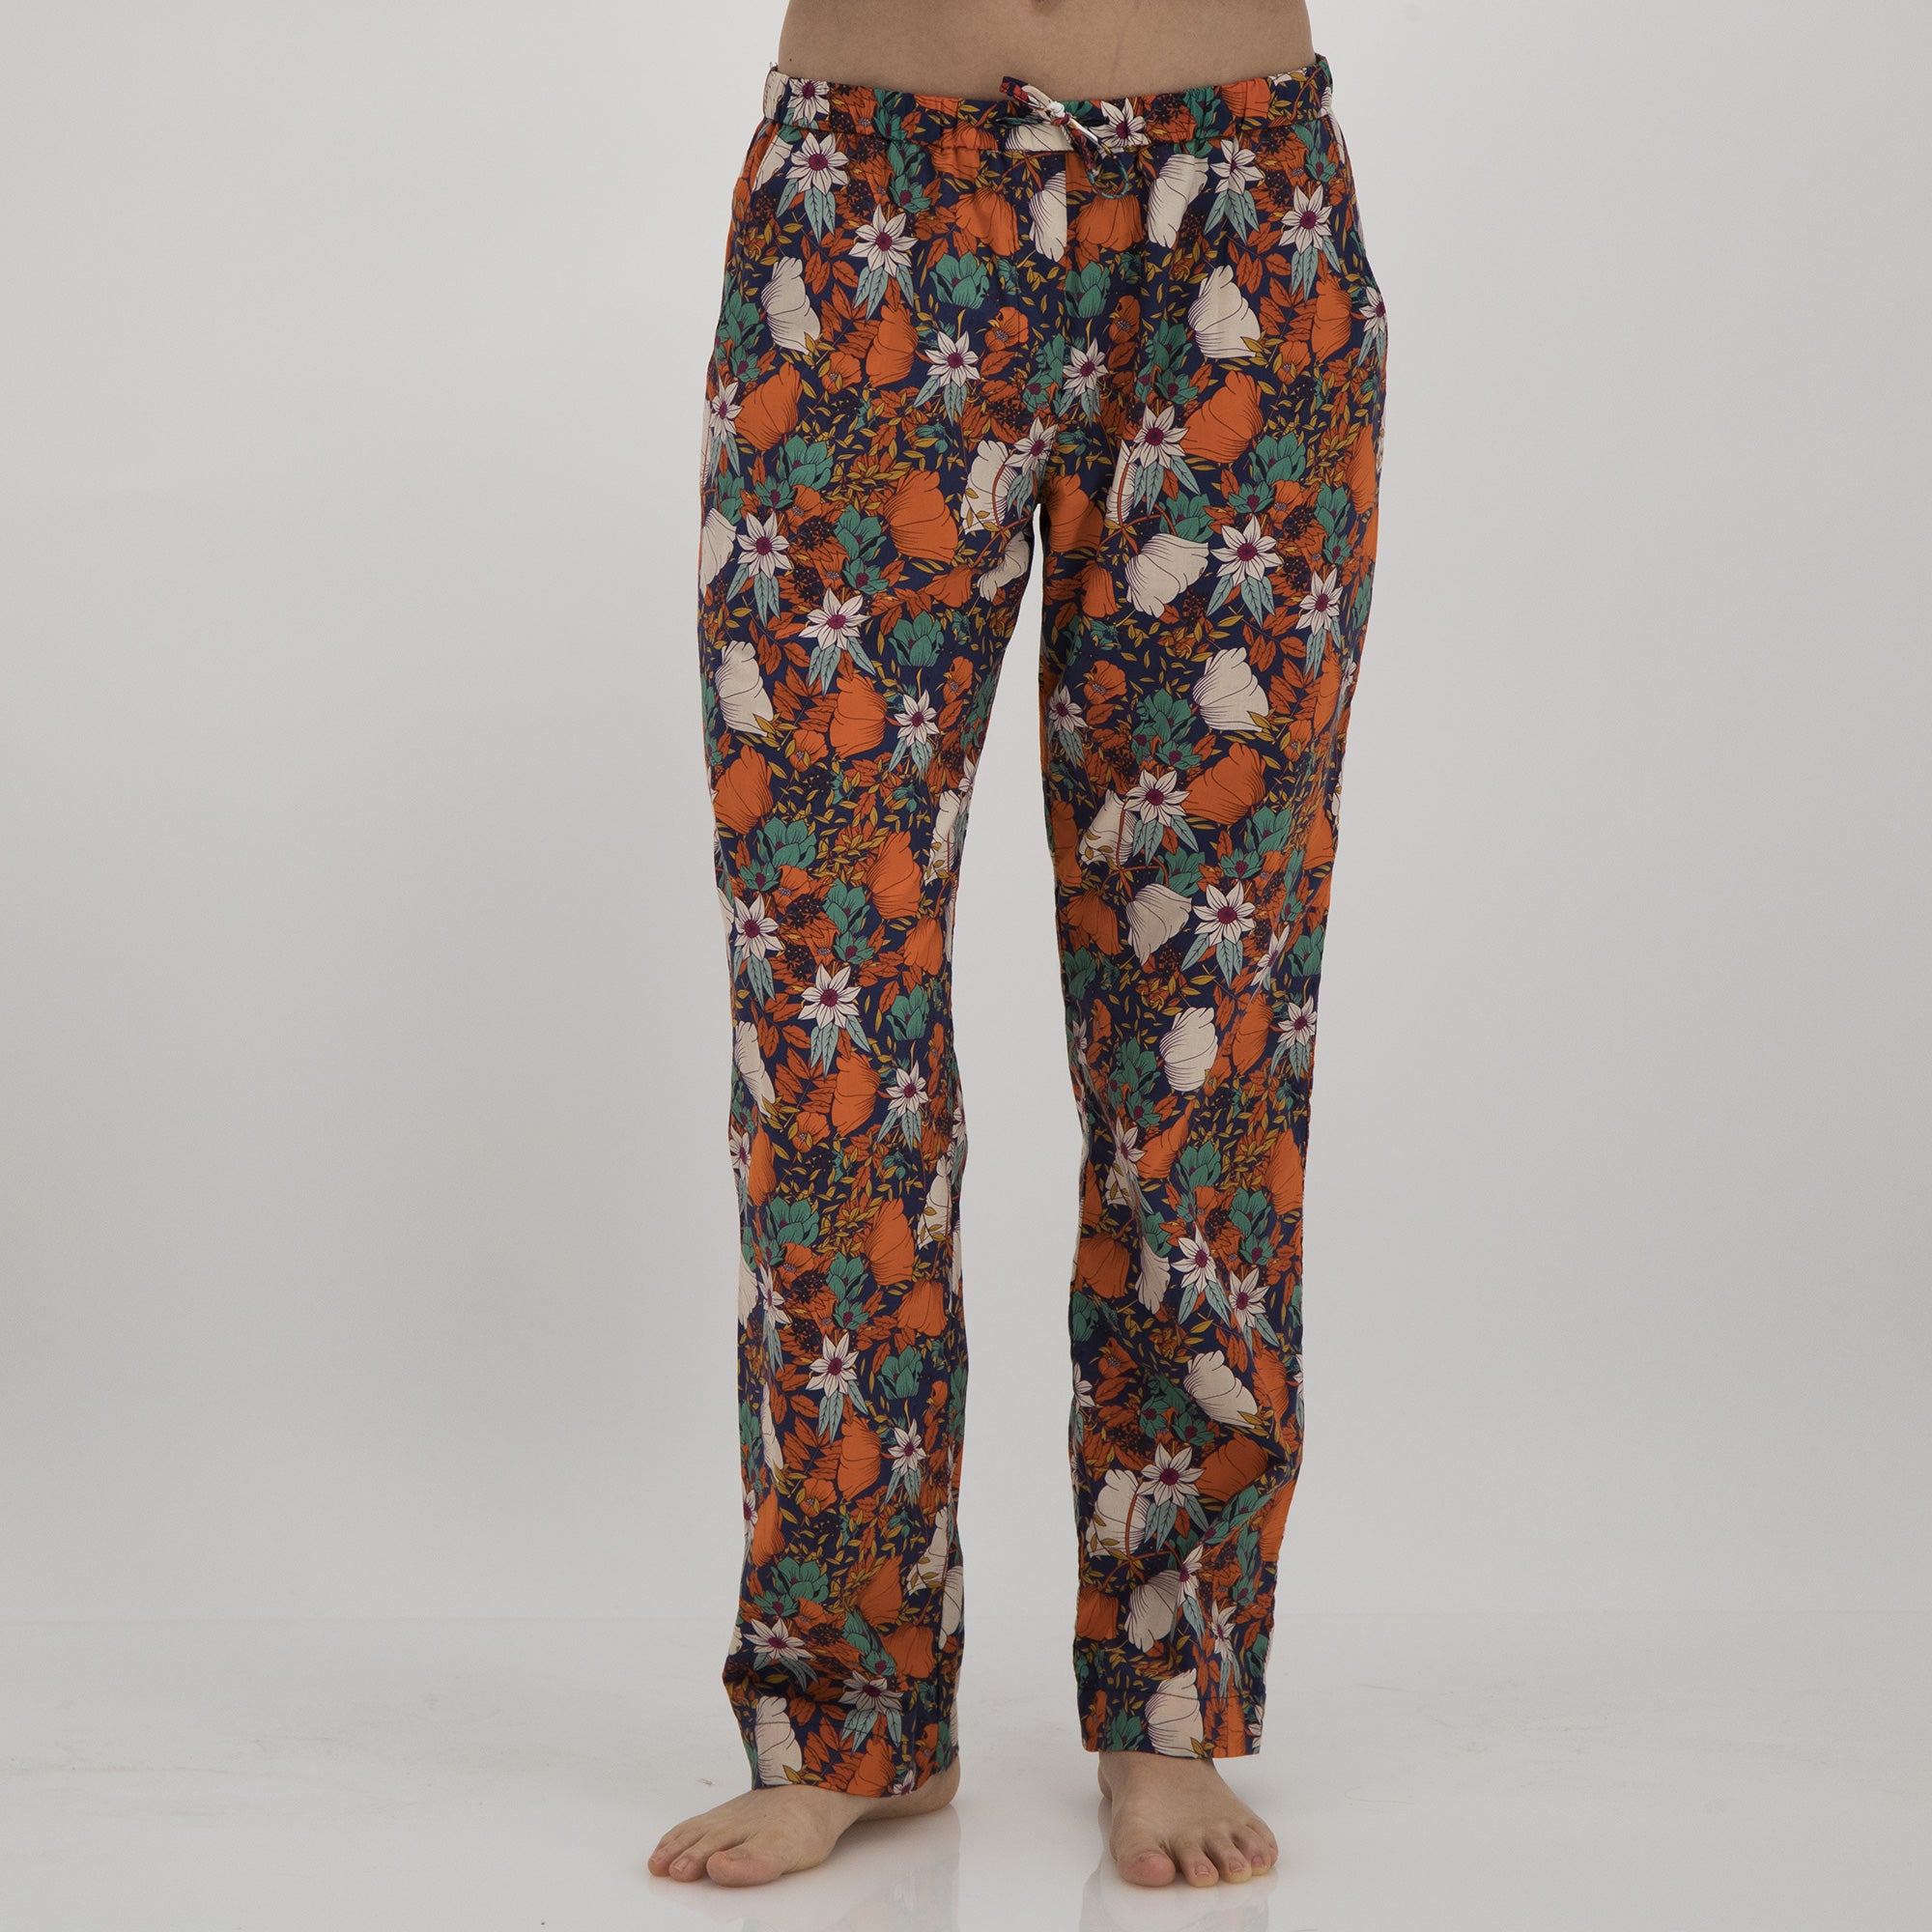 Womens Lounge Pants Madison Square Garden - Woodstock Laundry